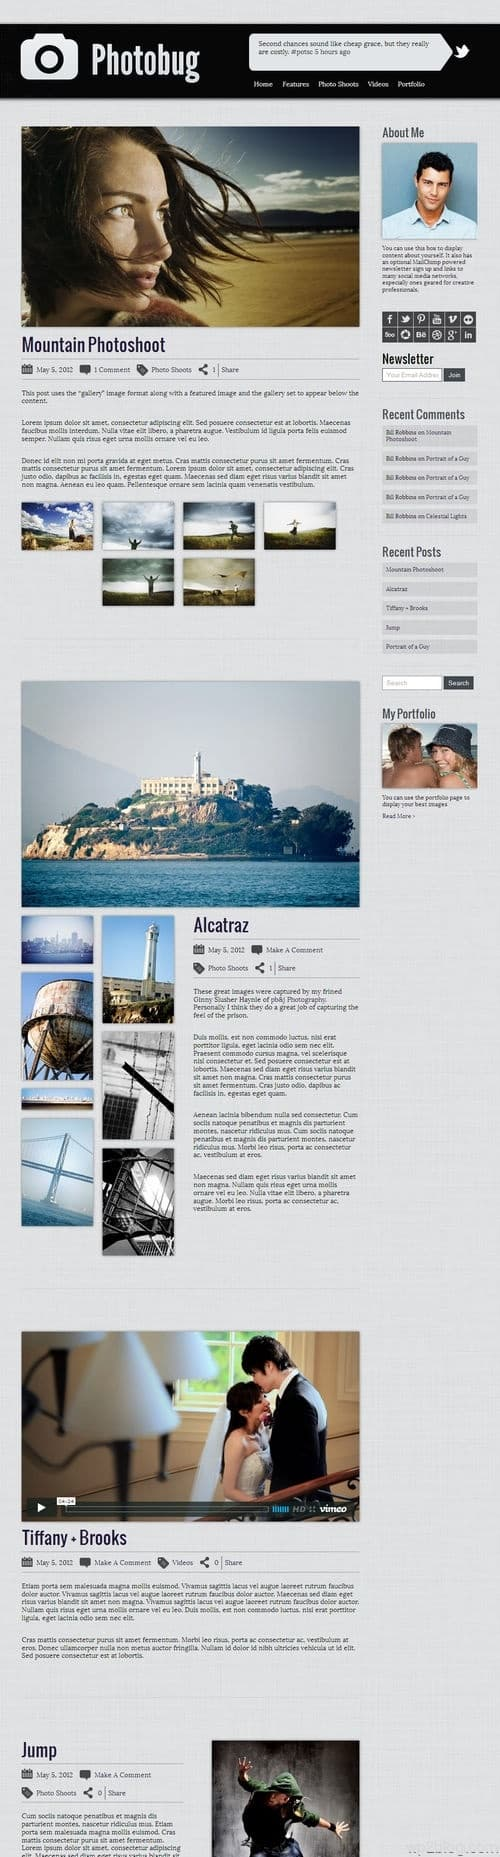 Photobug WordPress Theme